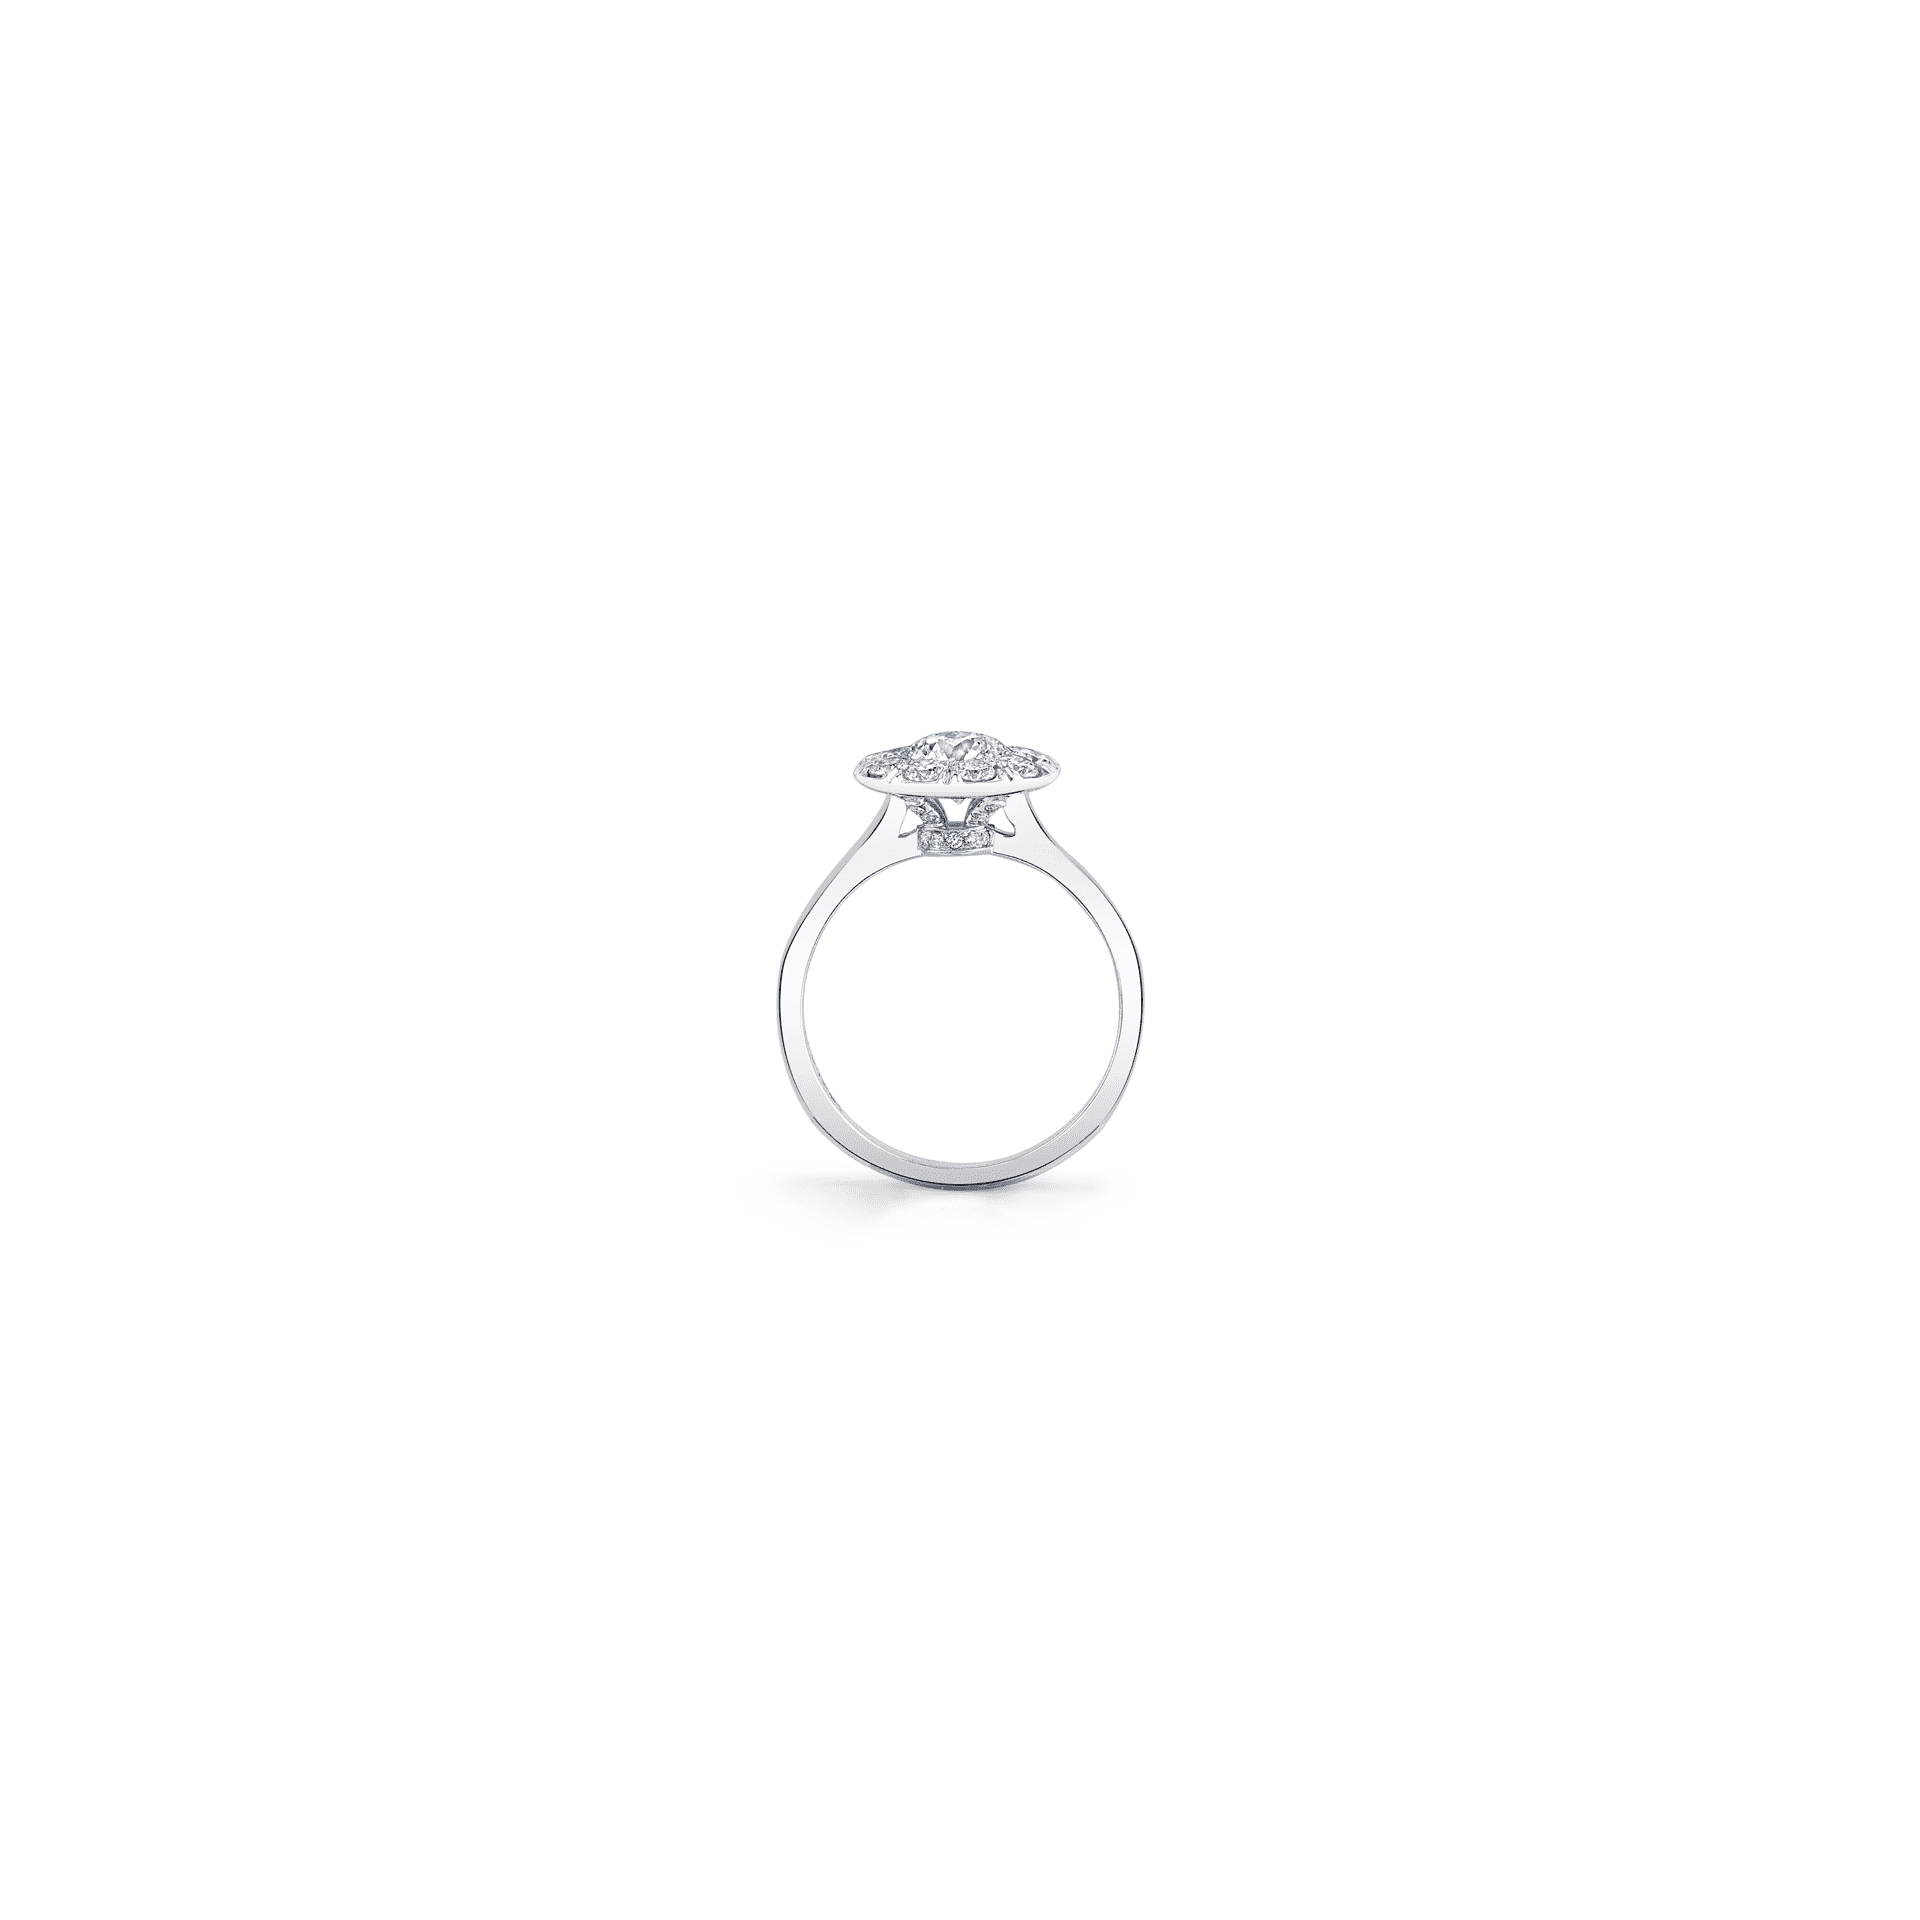 Colette Round Brilliant Seamless Solitaire® Engagement Ring with a solid band in 18k White Gold Standing View by Oui by Jean Dousset